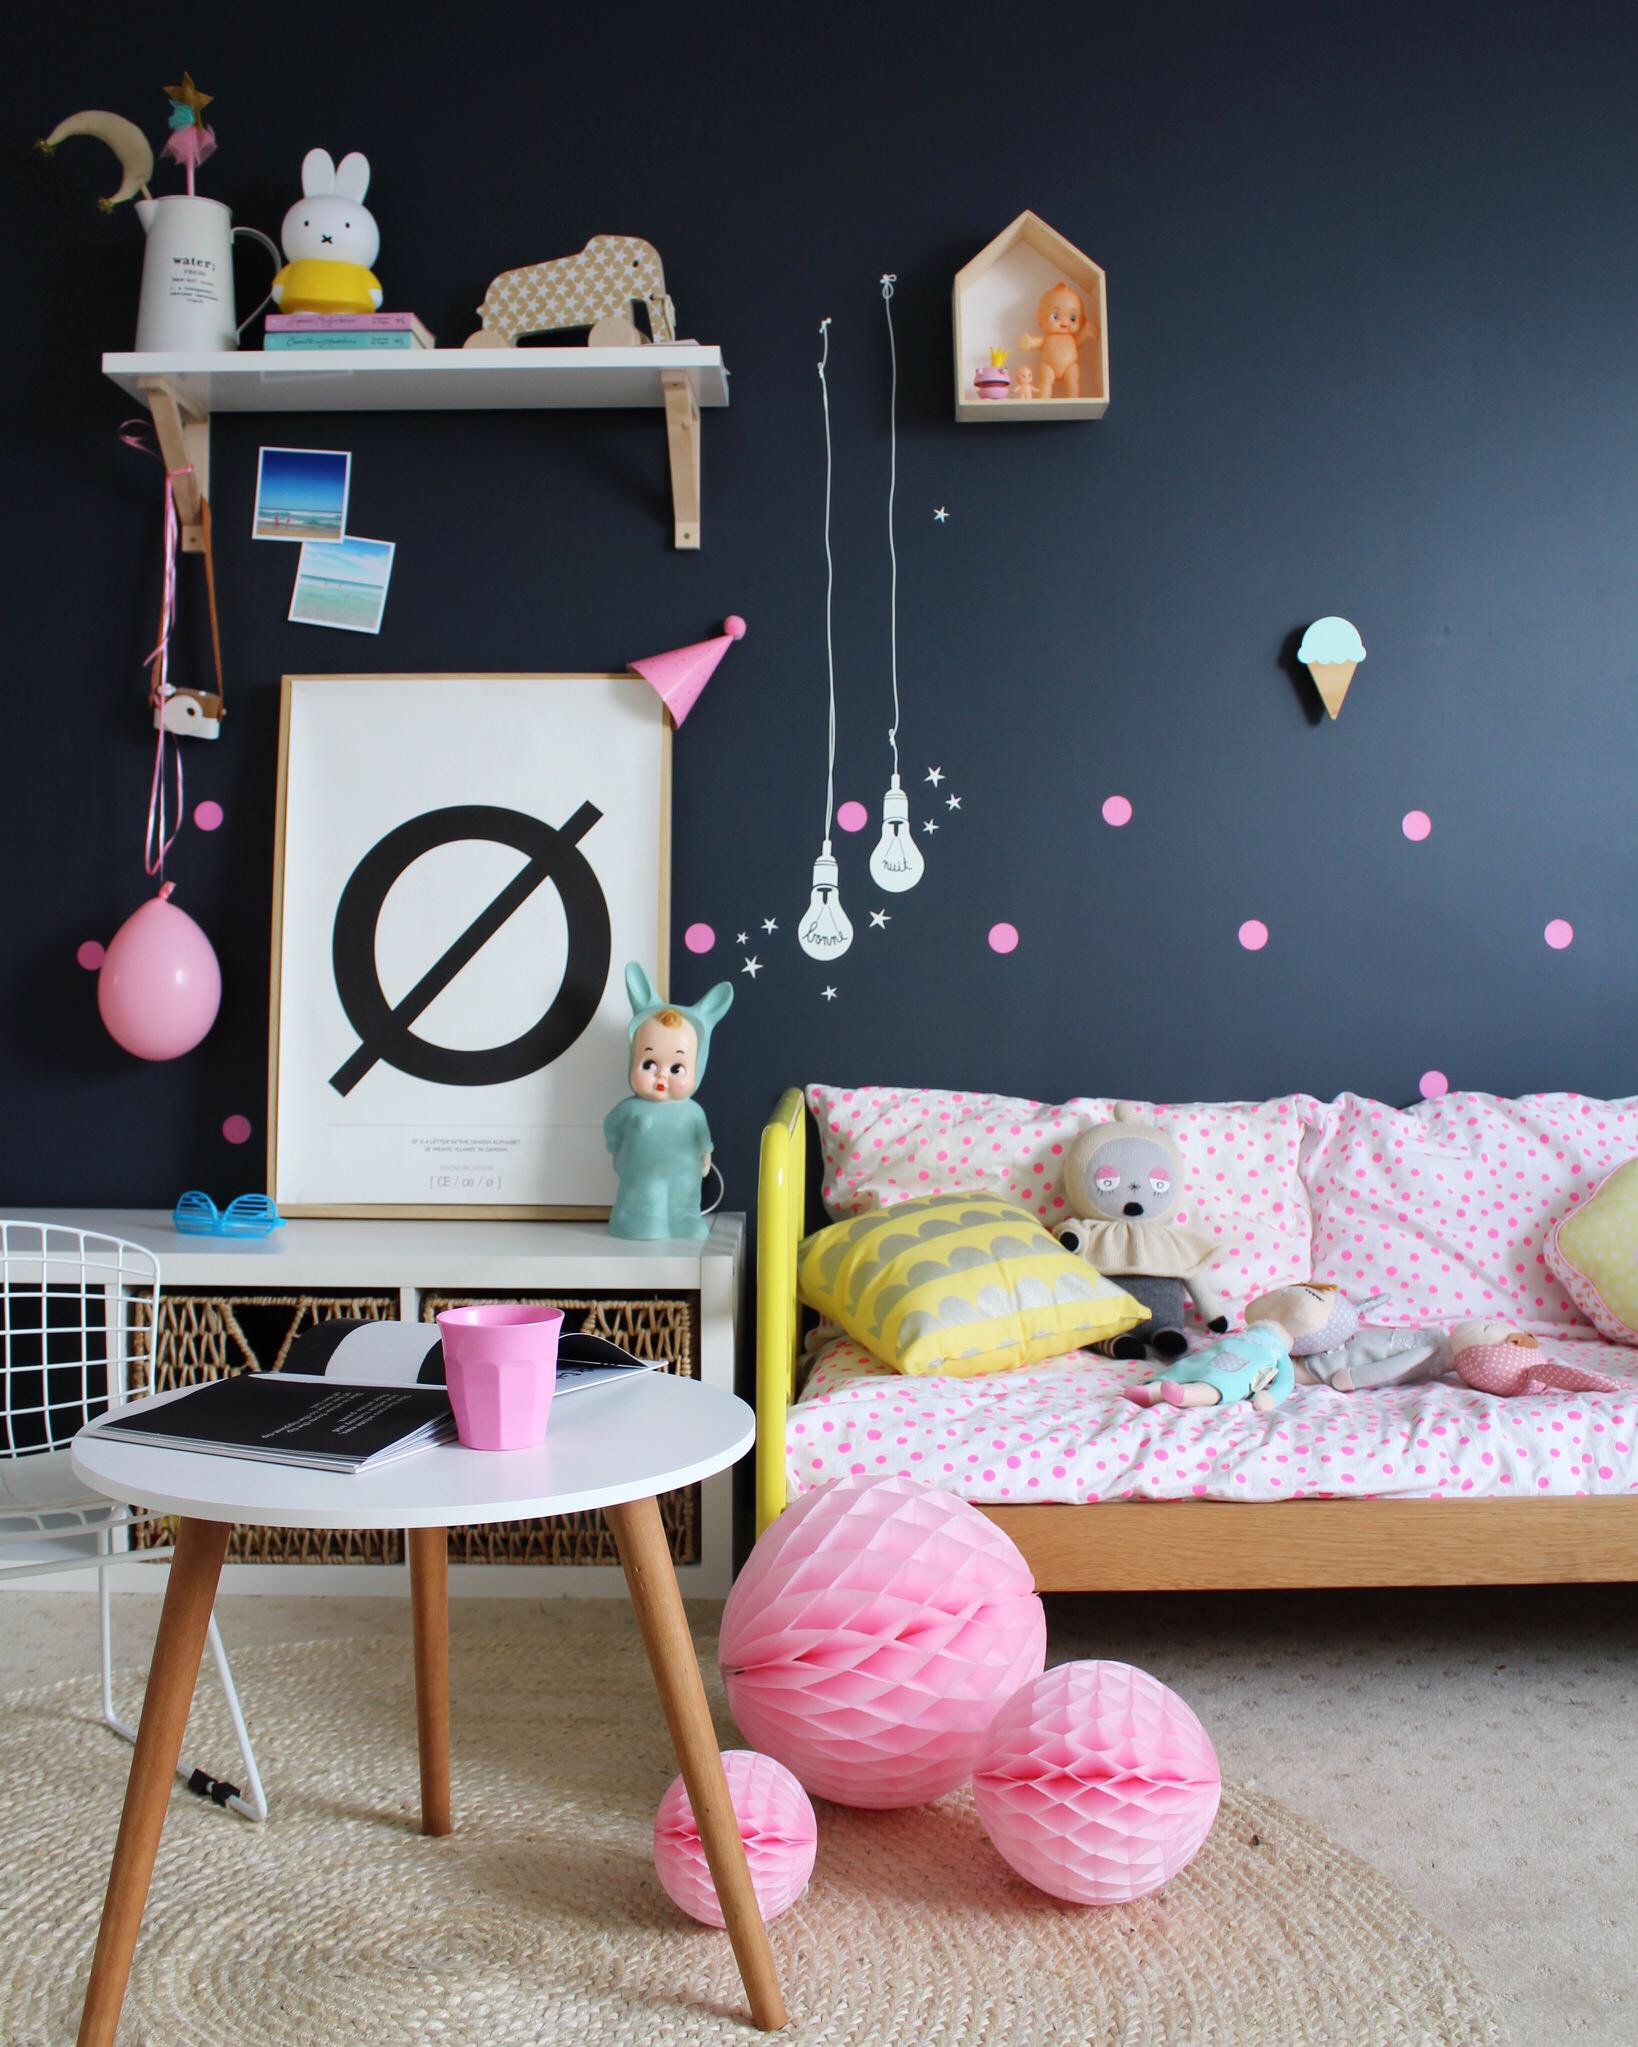 Kids' bedroom Ideas - using MIMI'lou decals www.fourcheekymonkeys.com